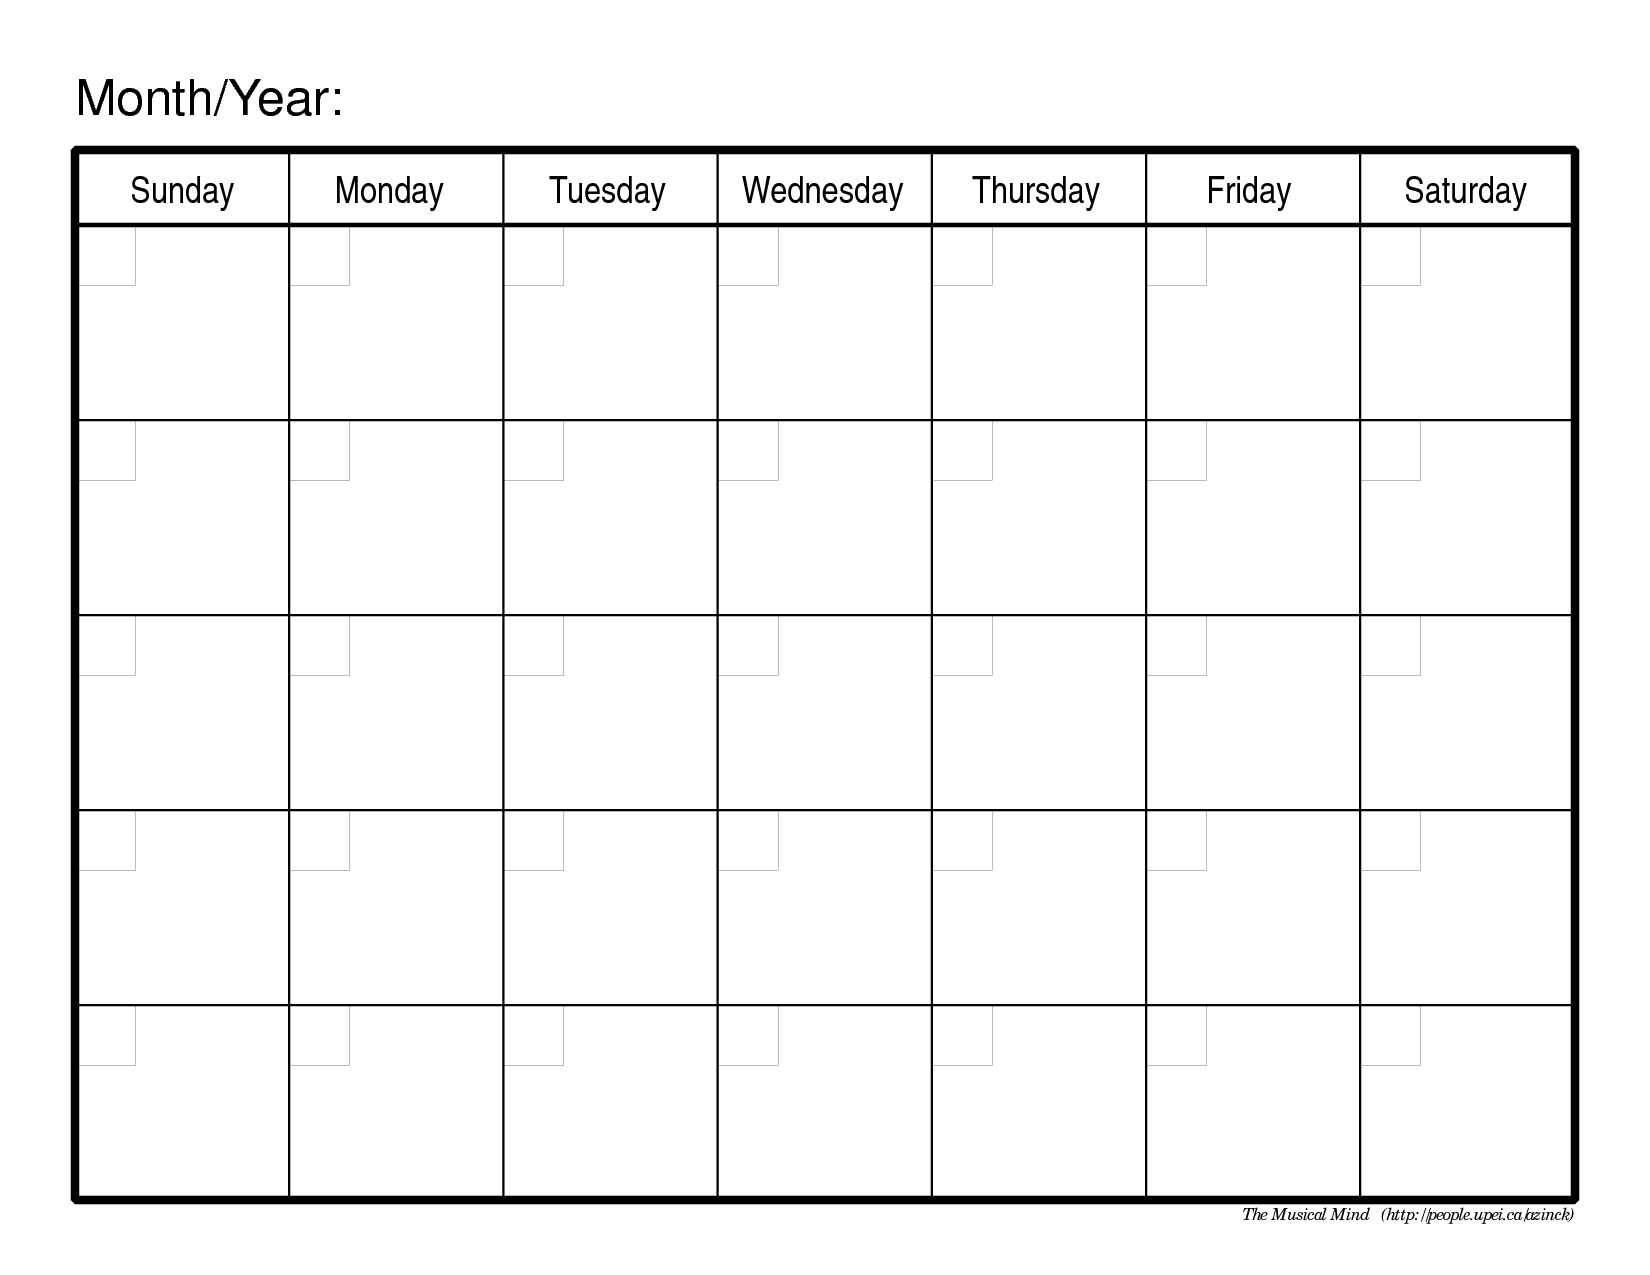 Calendar Templates Printable Free Fieldstation.co | Self Discovery with regard to Printable Monthly Calendar Templates